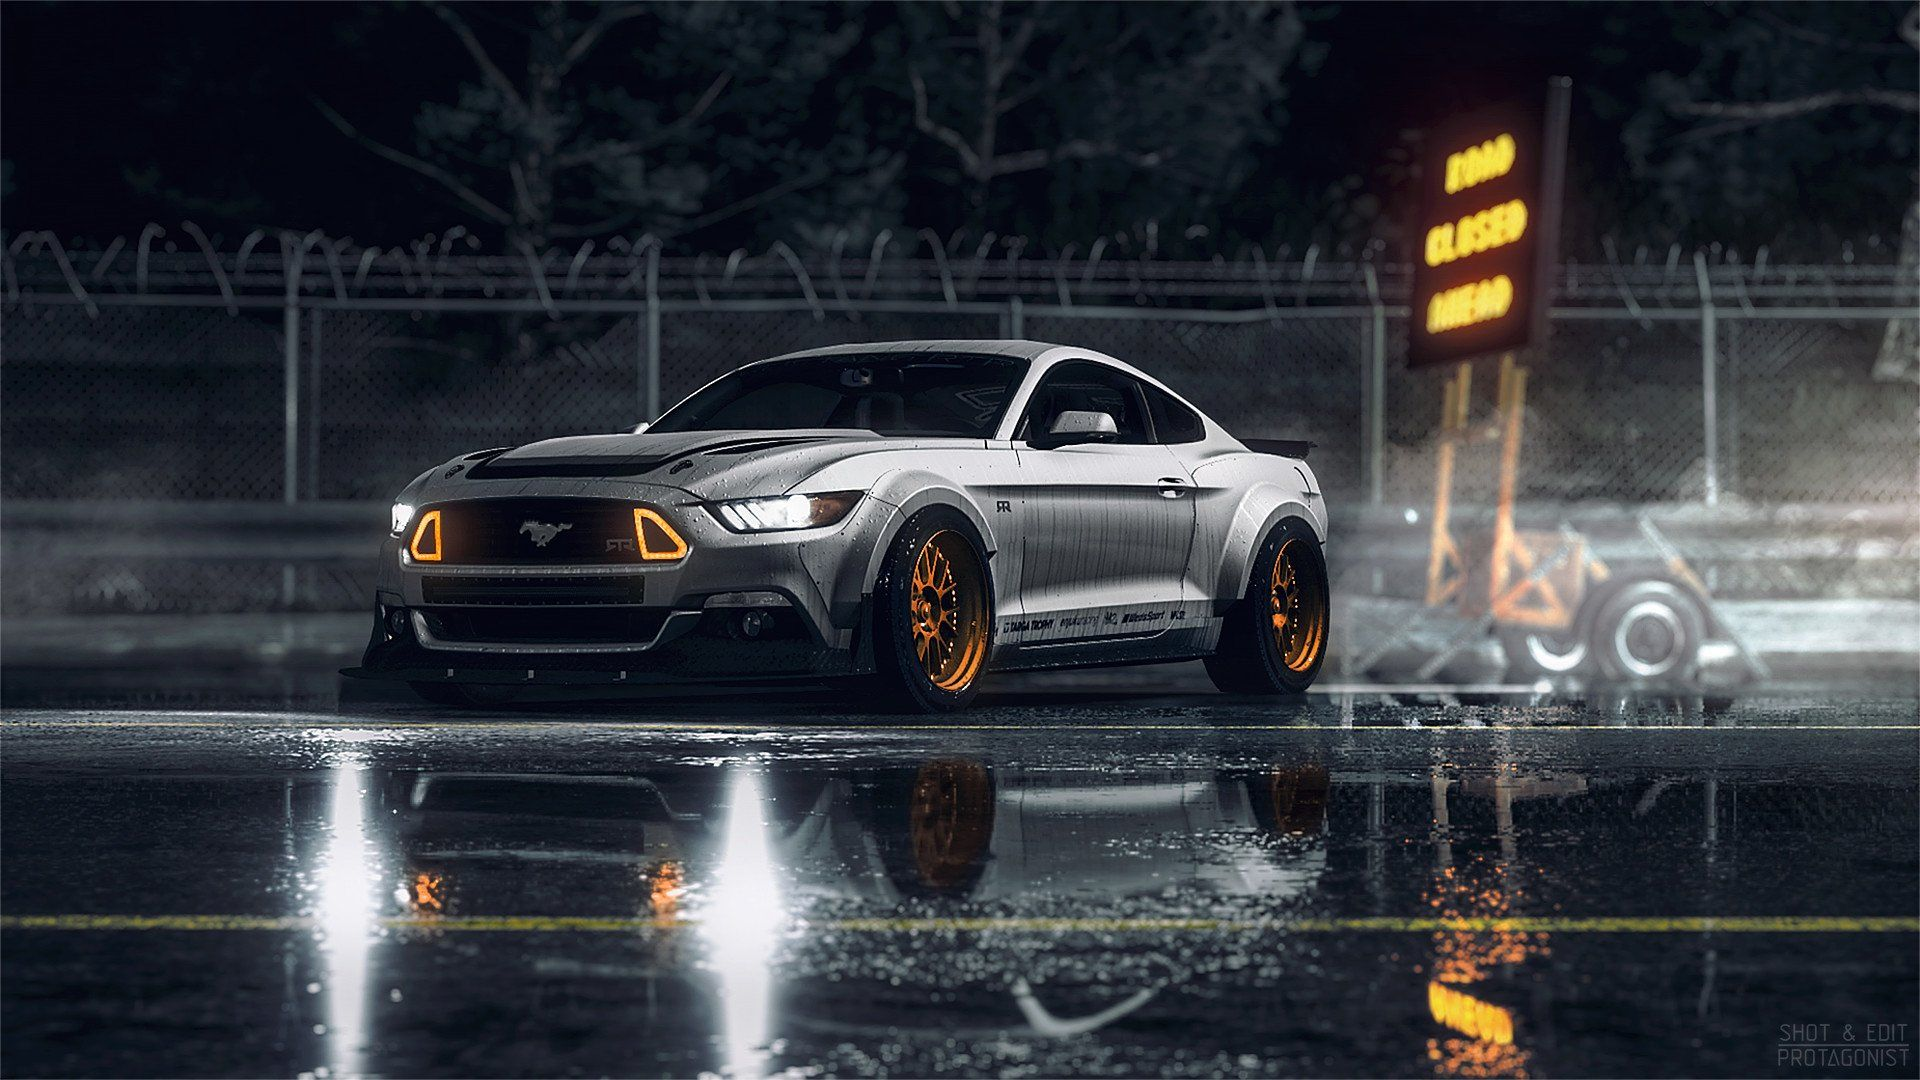 Top Ford Mustang Wallpaper High Quality Resolution Mustang